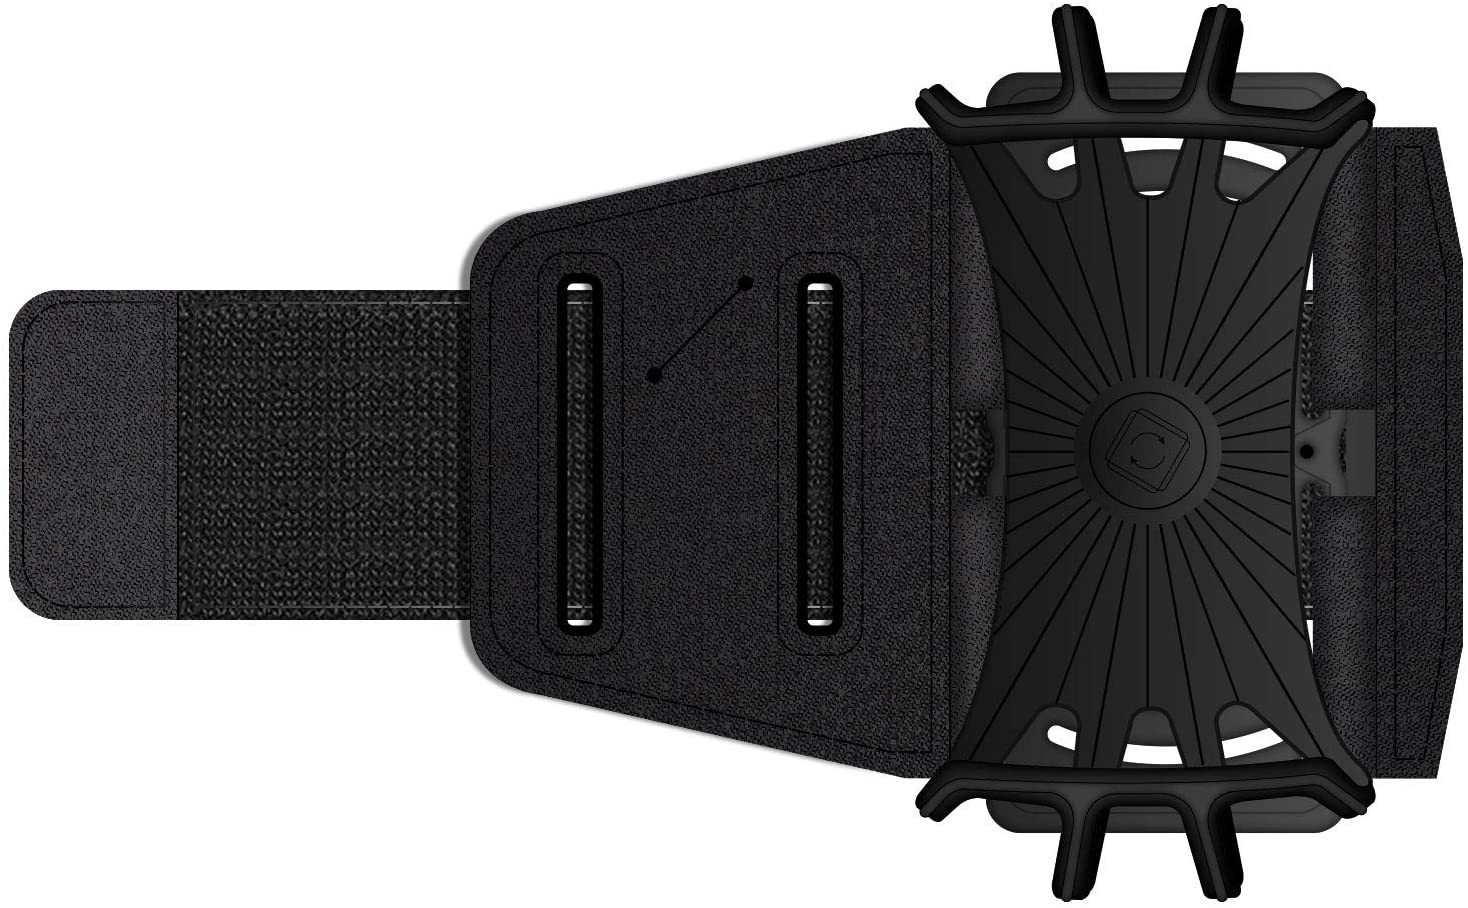 Cellet Sports Armband 180 Degree Rotational Exercise Armband with Adjustable Strap Compatible for iPhone Xs/XS Max/XR/X/8/Plus,Note 9/8/ Galaxy S9/S9+/S8/S8+/A6/J7/J3, LG Stylo 4/Plus